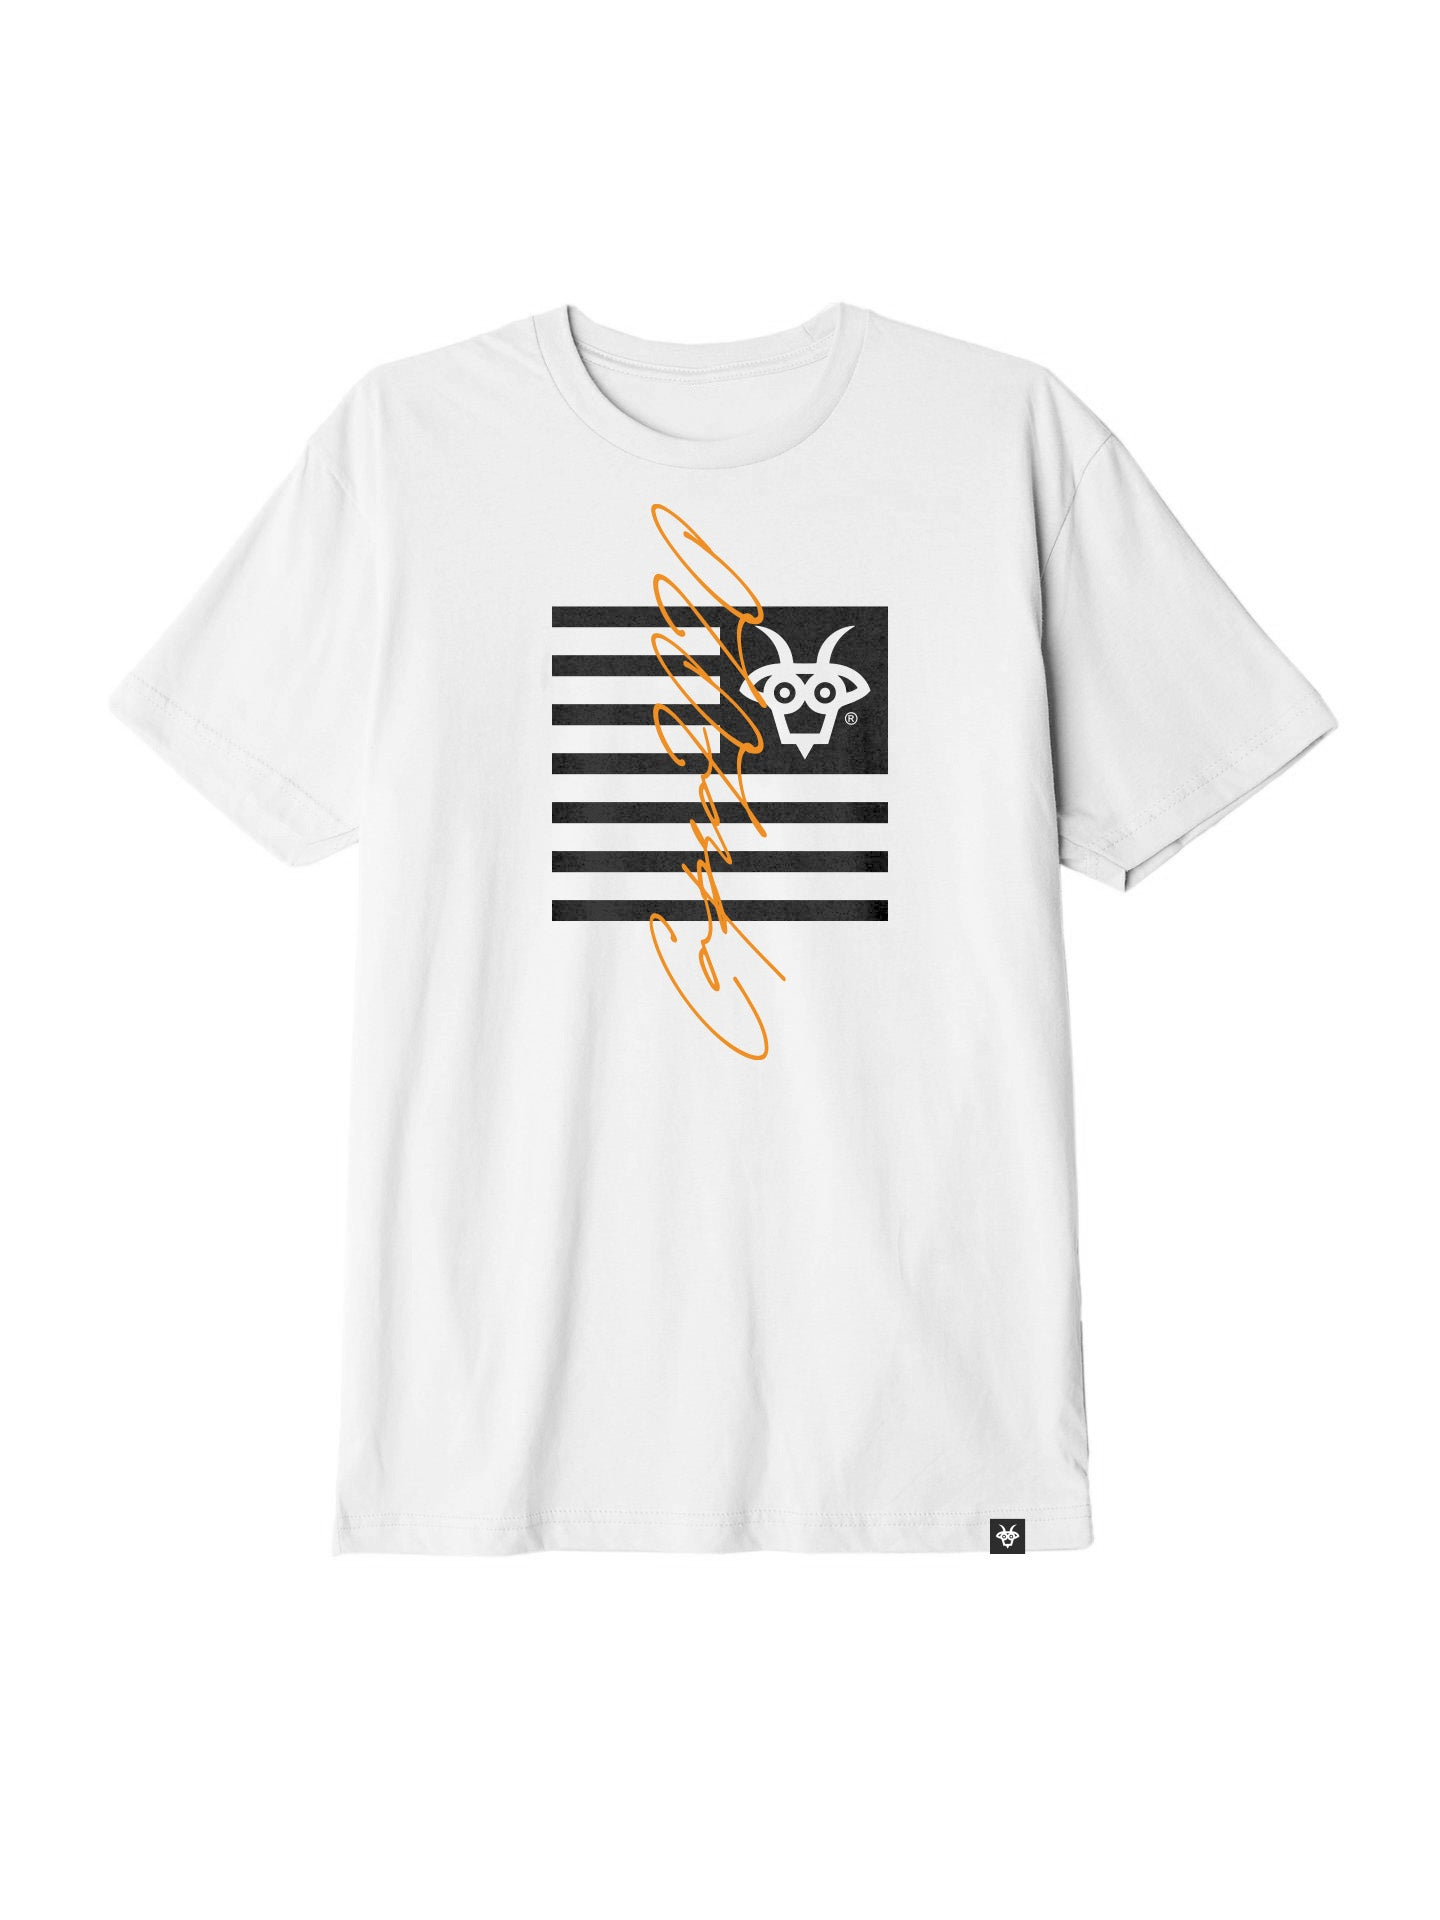 Capra Flagship Tee - White/Black